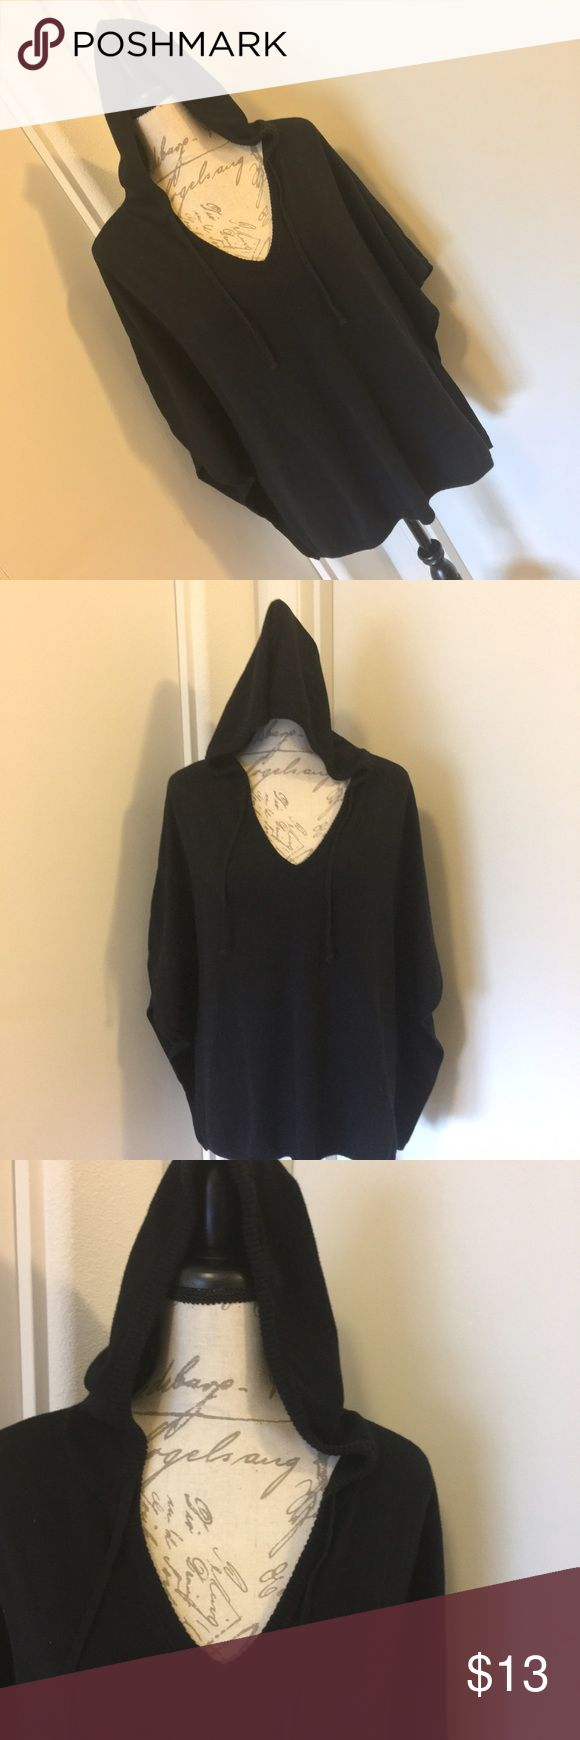 Old Navy Black Poncho with Faux Drawstrings Old Navy Black Poncho with Faux Drawstrings, and a hood. Size is M/L. Minimal fading and pilling from washing. Small hole under one arm, can be repaired. GUC. Make me an offer! Old Navy Tops Sweatshirts & Hoodies